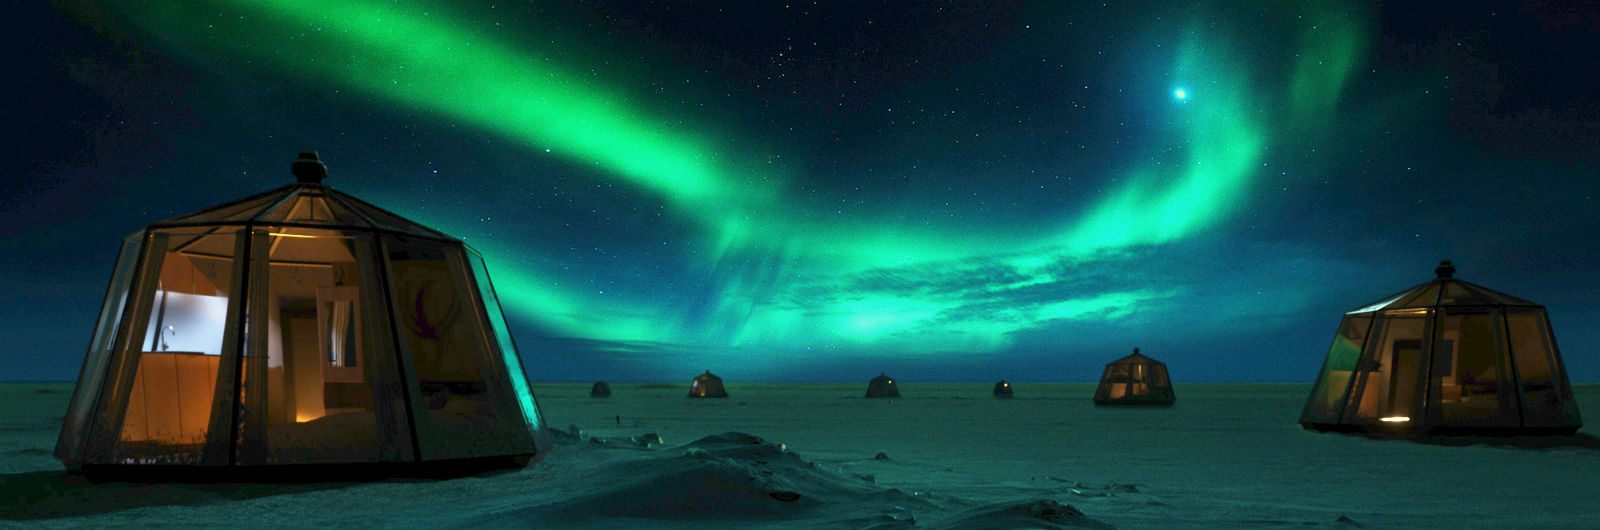 A Rare Chance to Sleep at the North Pole